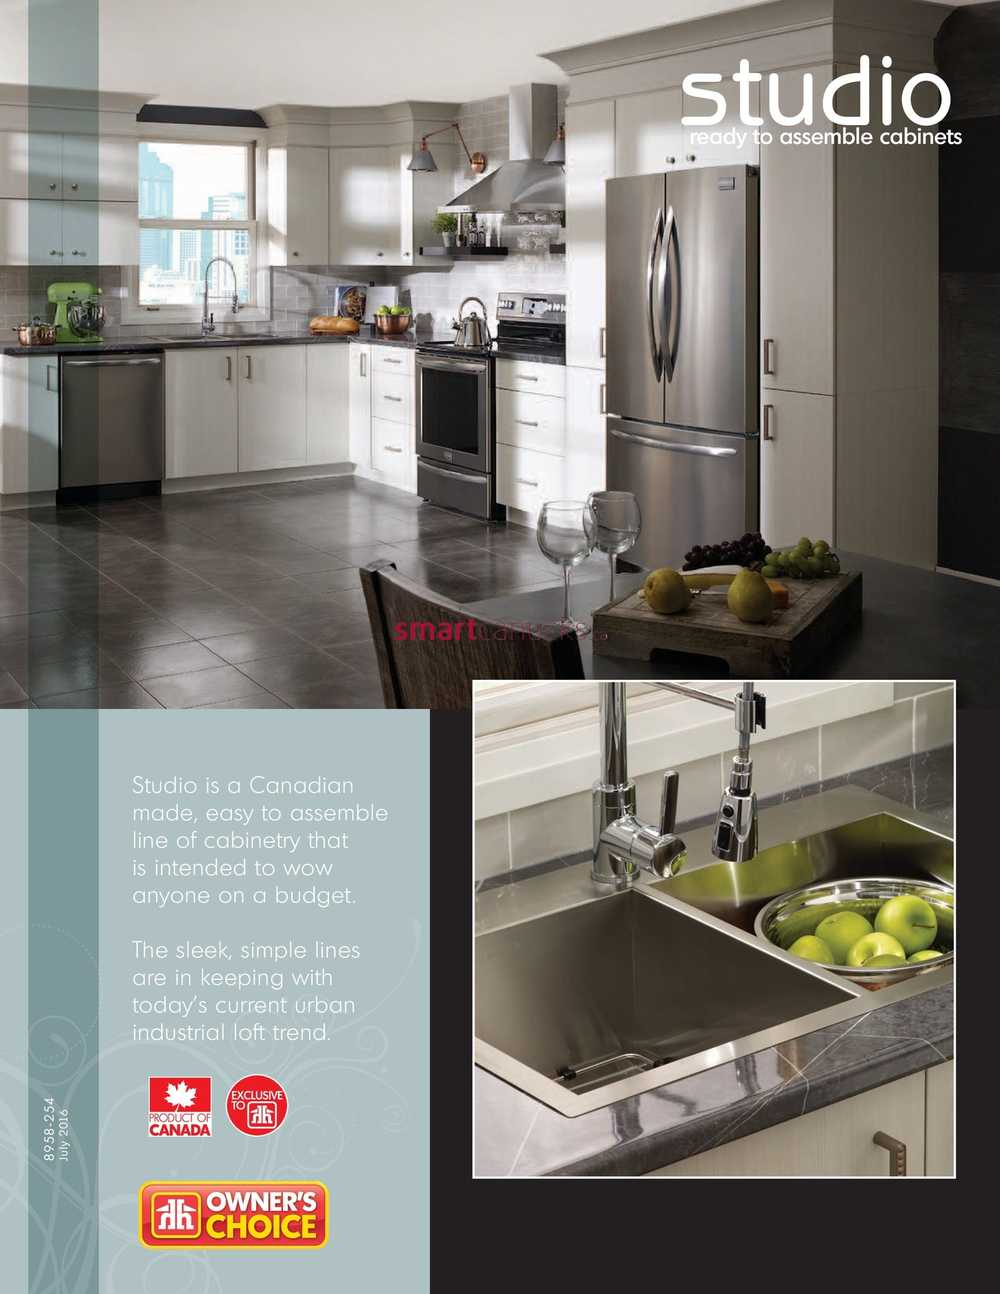 Home Hardware Kitchen Catalogue Aug 25 To Oct 31. Kitchen Appliances Set For Sale. Kitchen Ideas Tumblr. Little China Kitchen Yelp. Kitchen Layout Templates Free. Kitchen Paint Colors With Black Appliances. Old Kitchen Cabinet Makeover. Granite Kitchen Benchtops Brisbane. Diy Remodeling Your Kitchen